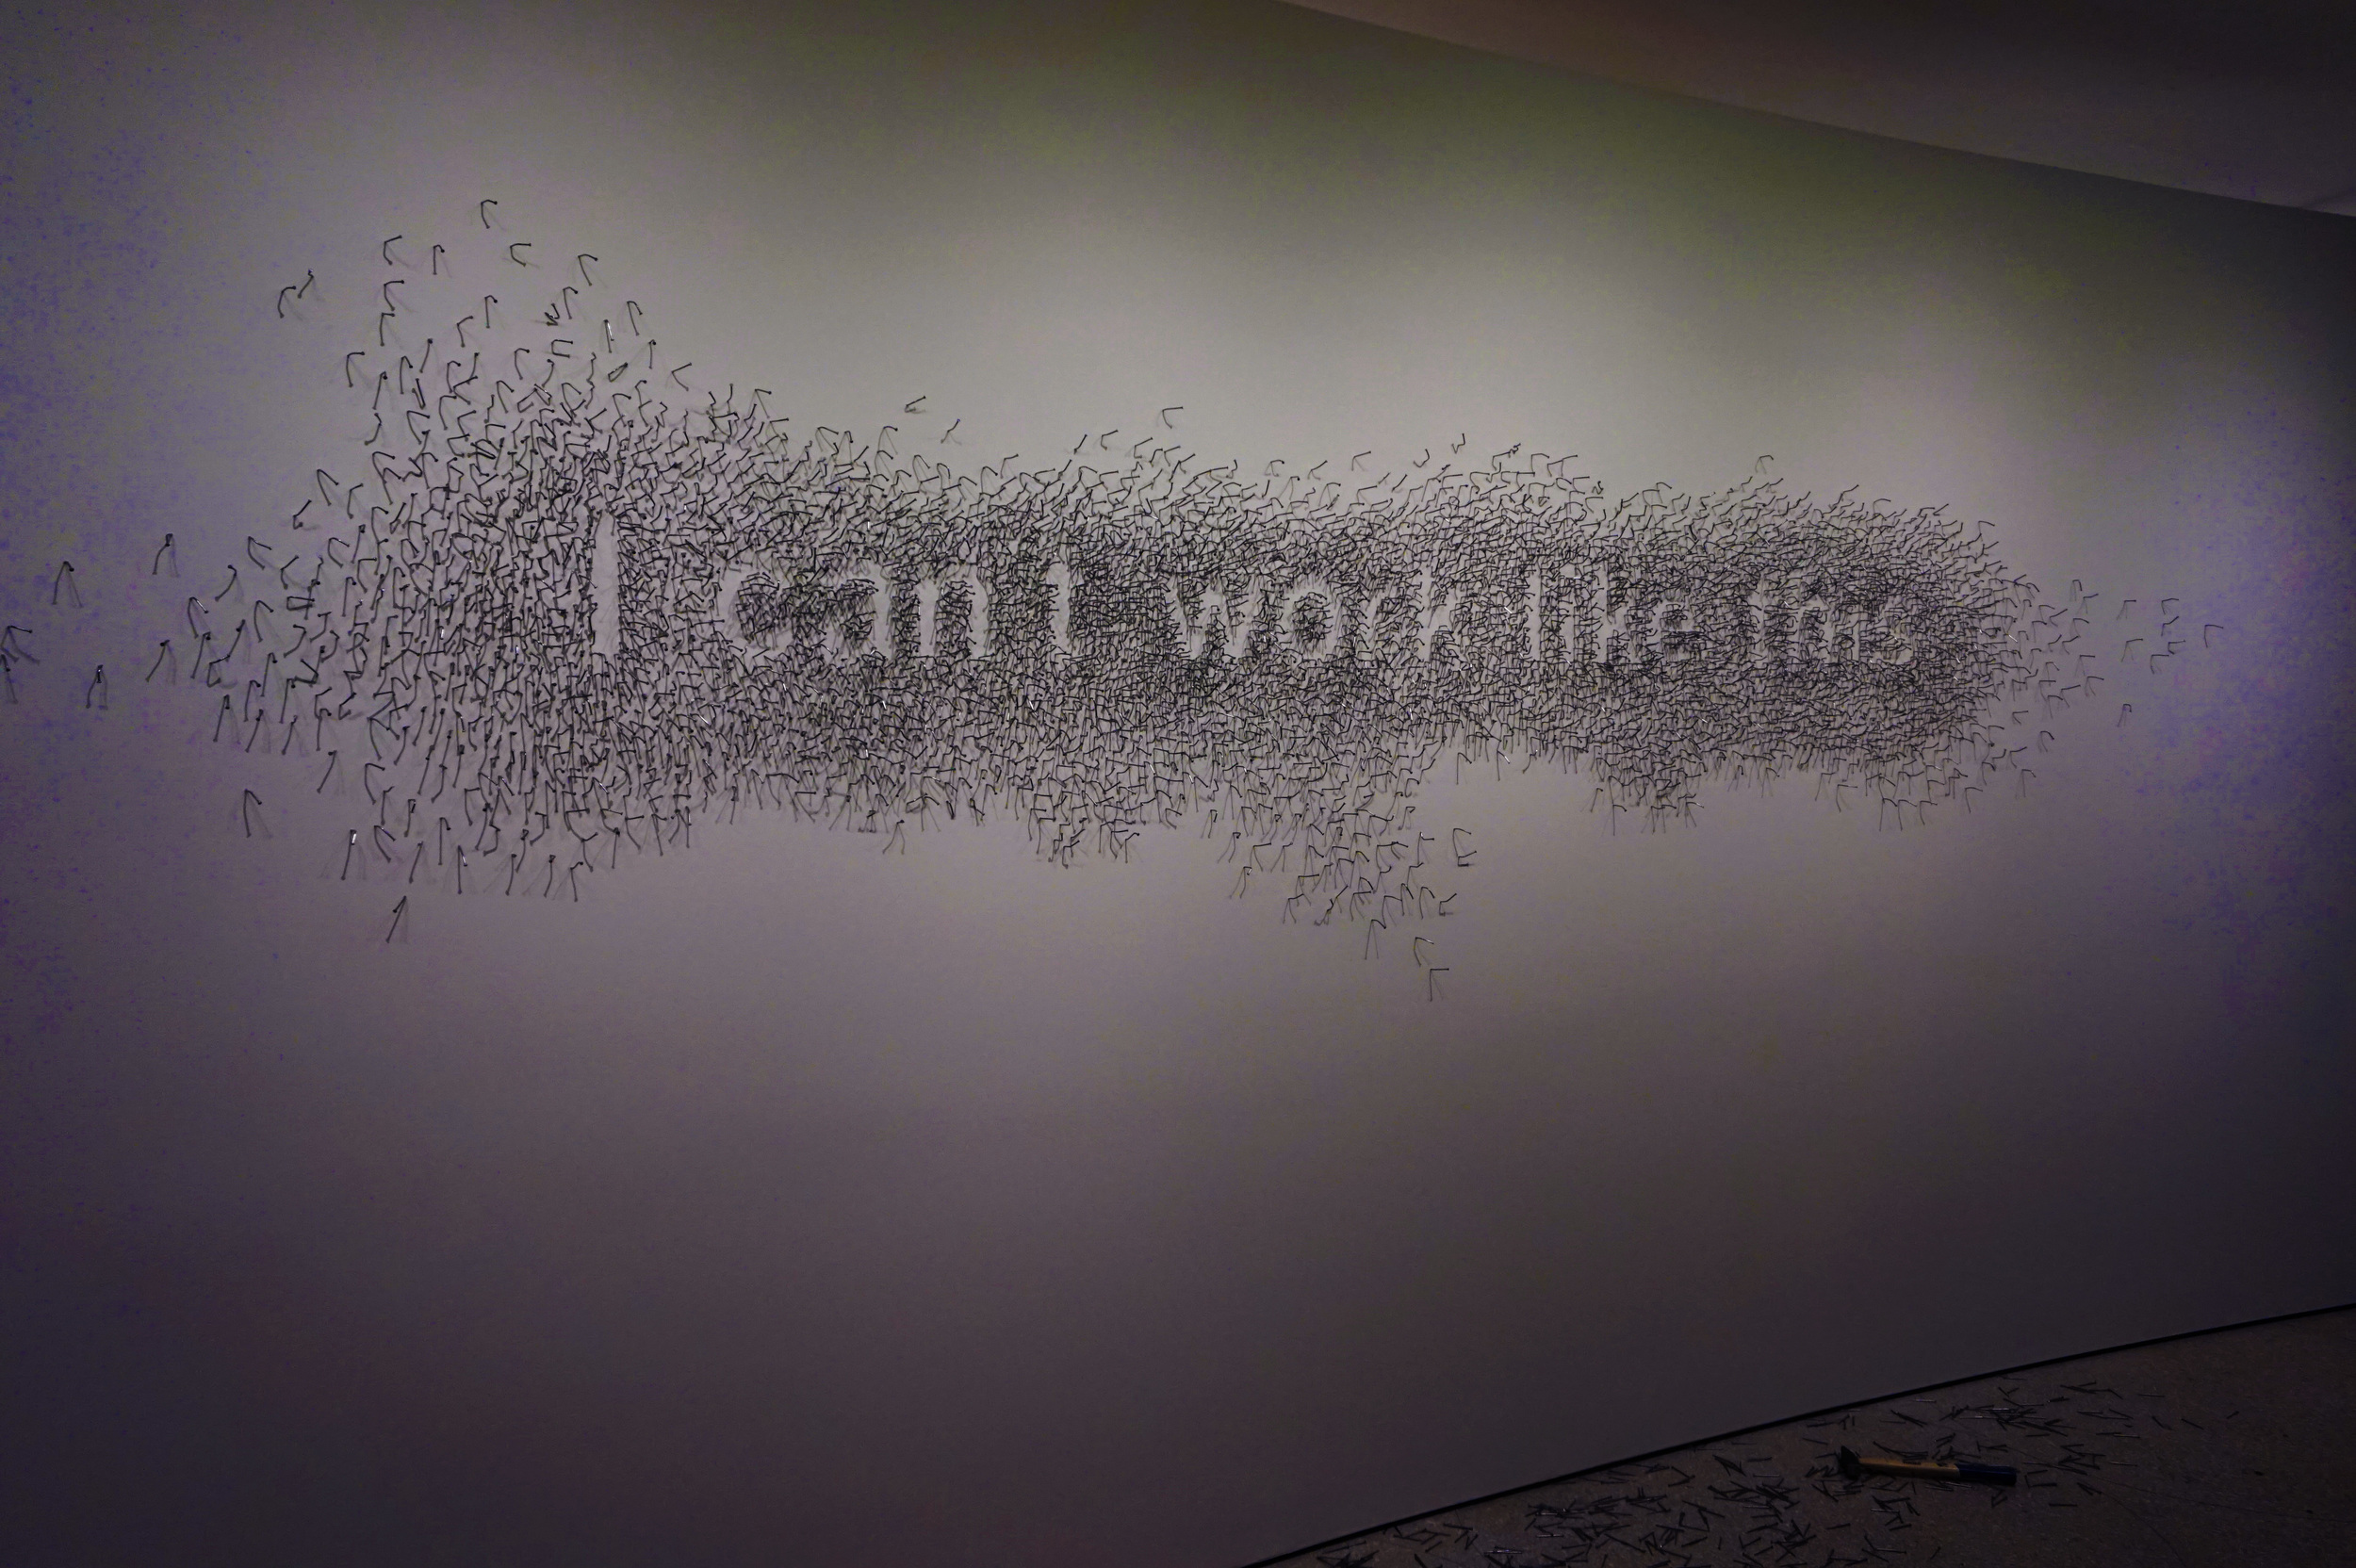 I can't work like this  by Natascha Sadr Haghighian c.2007, intended to reflect her frustrations of being stifled in her profession